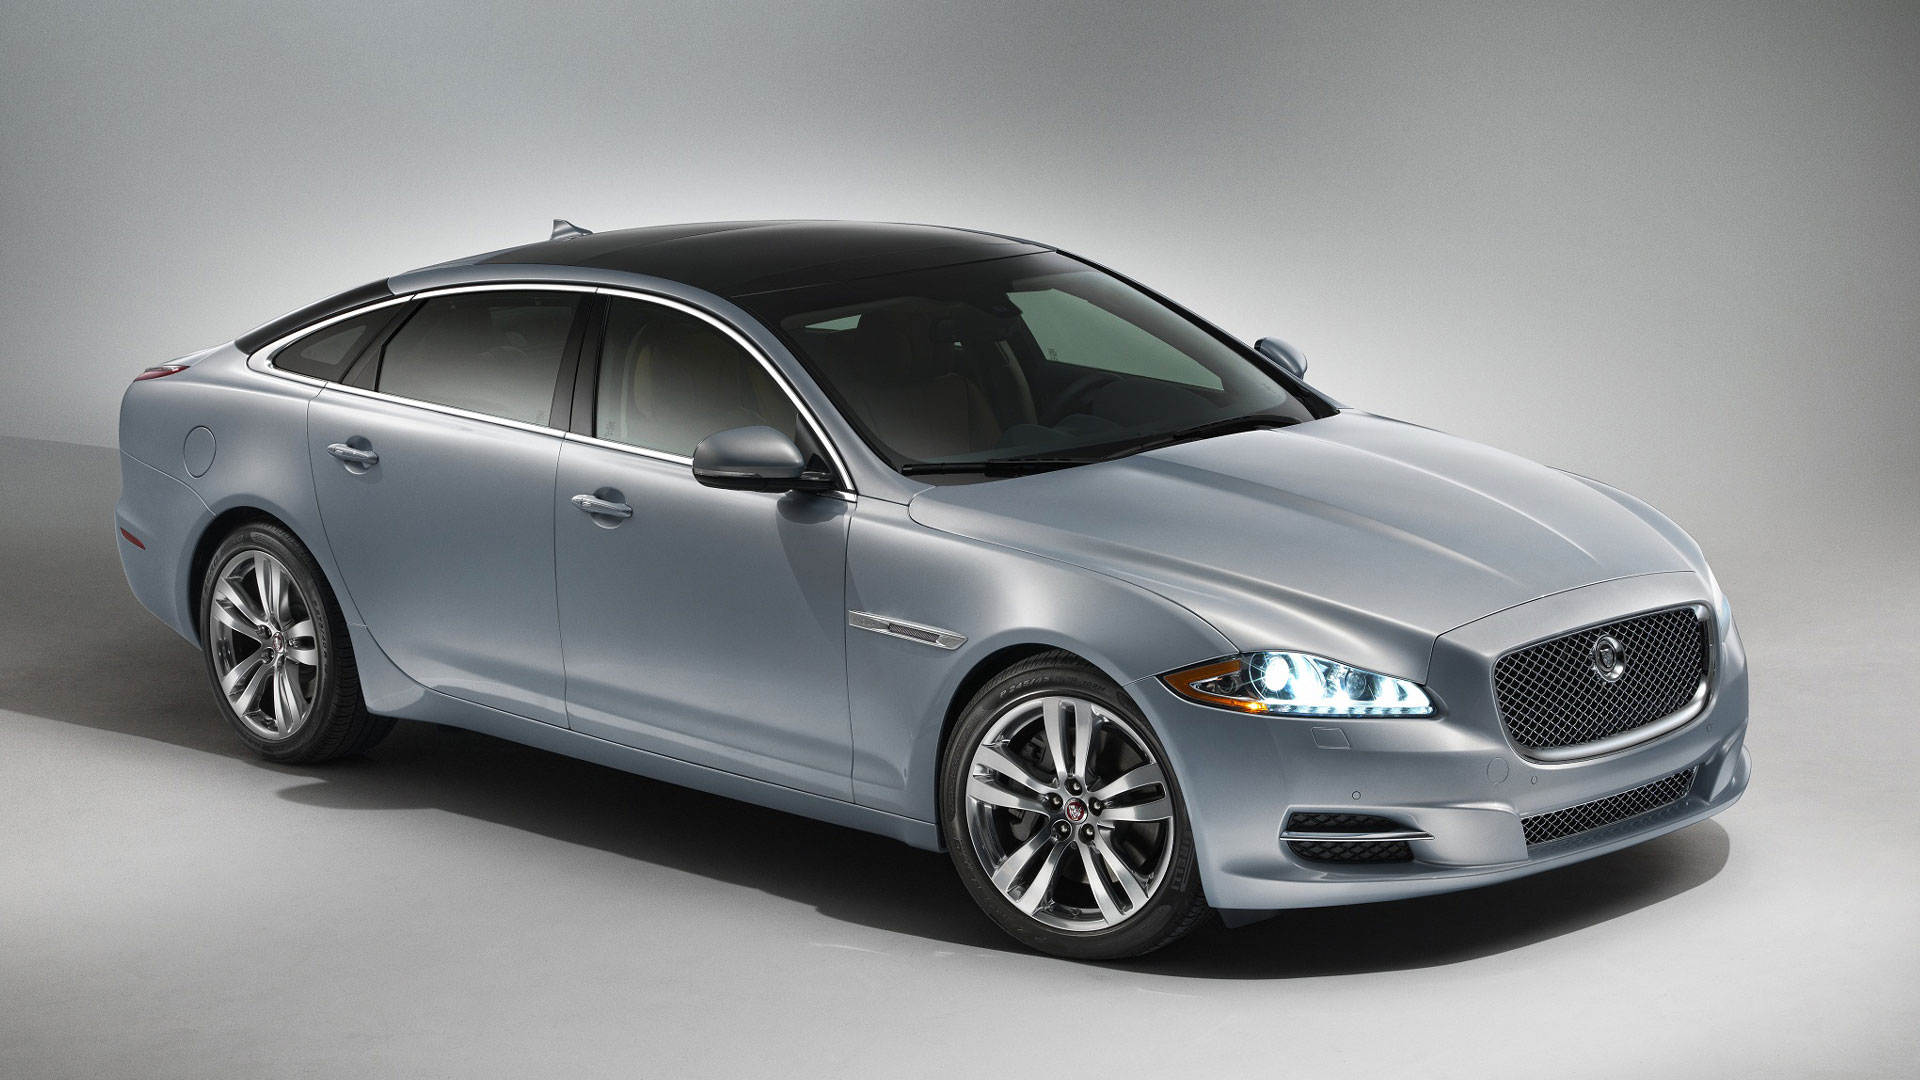 Jaguar XJ 2014 3.0L diesel turbocharged LWB